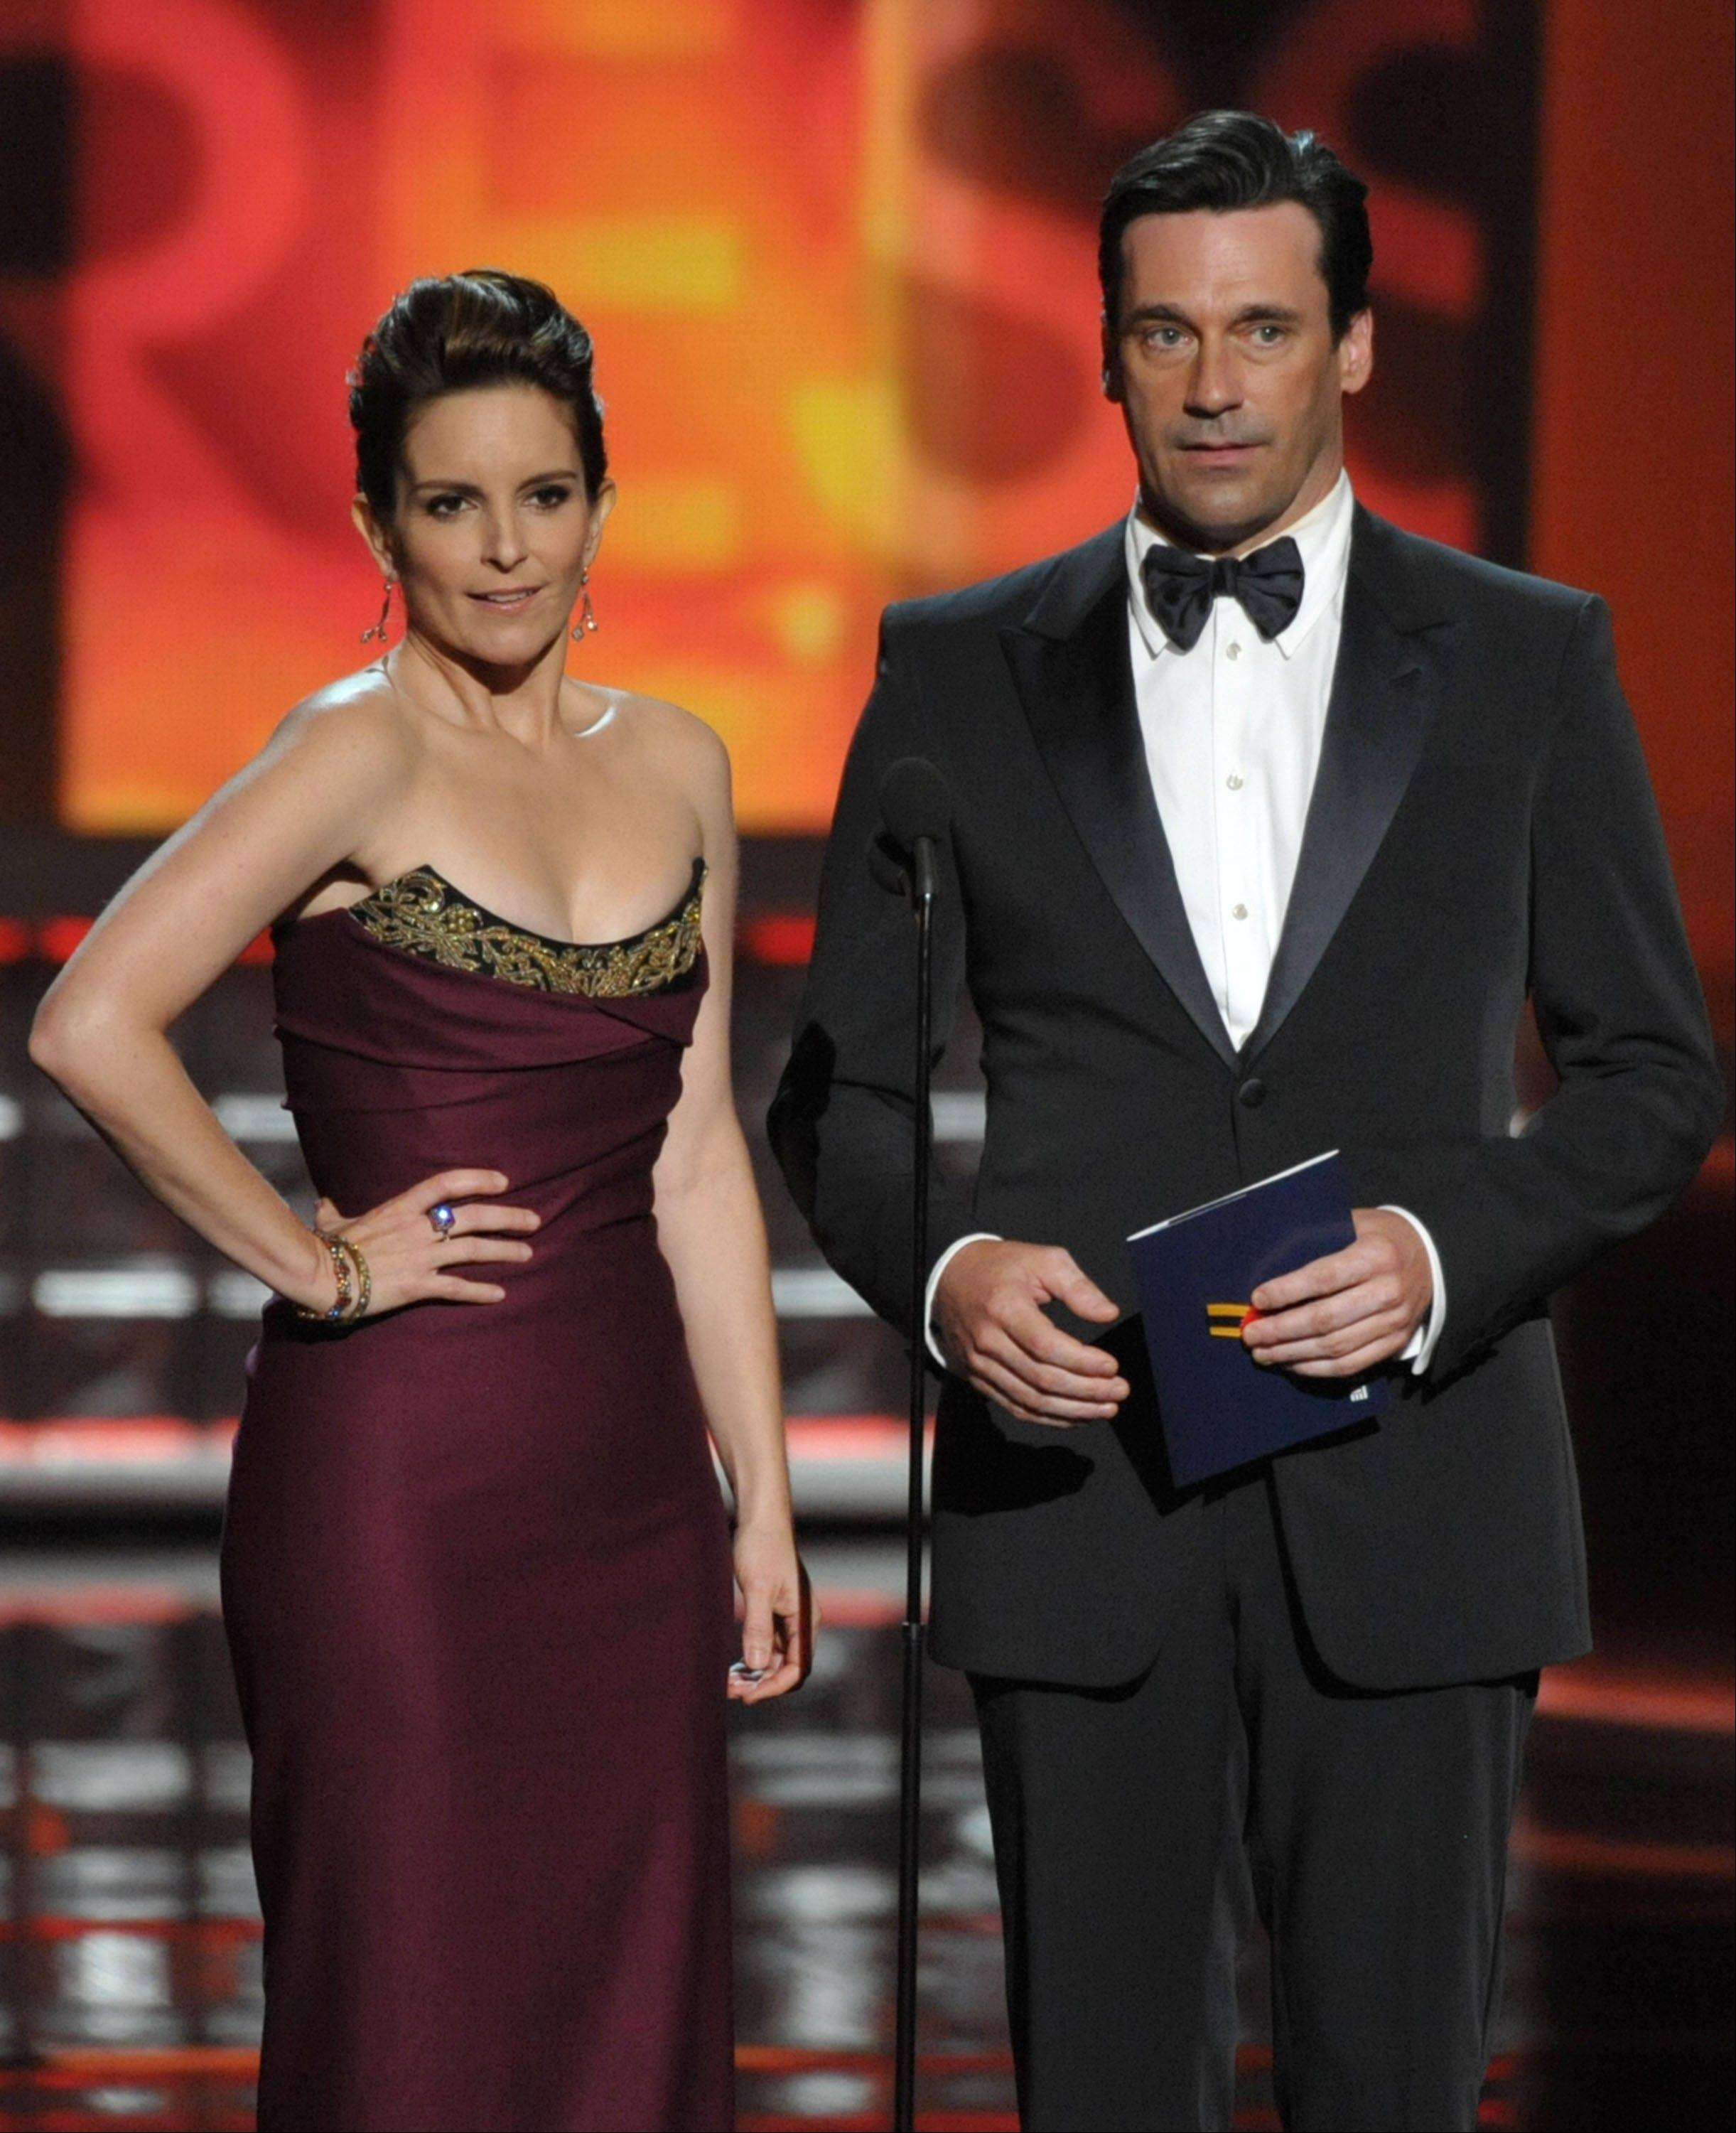 Tina Fey, left, and Jon Hamm present an award onstage at the 64th Primetime Emmy Awards.